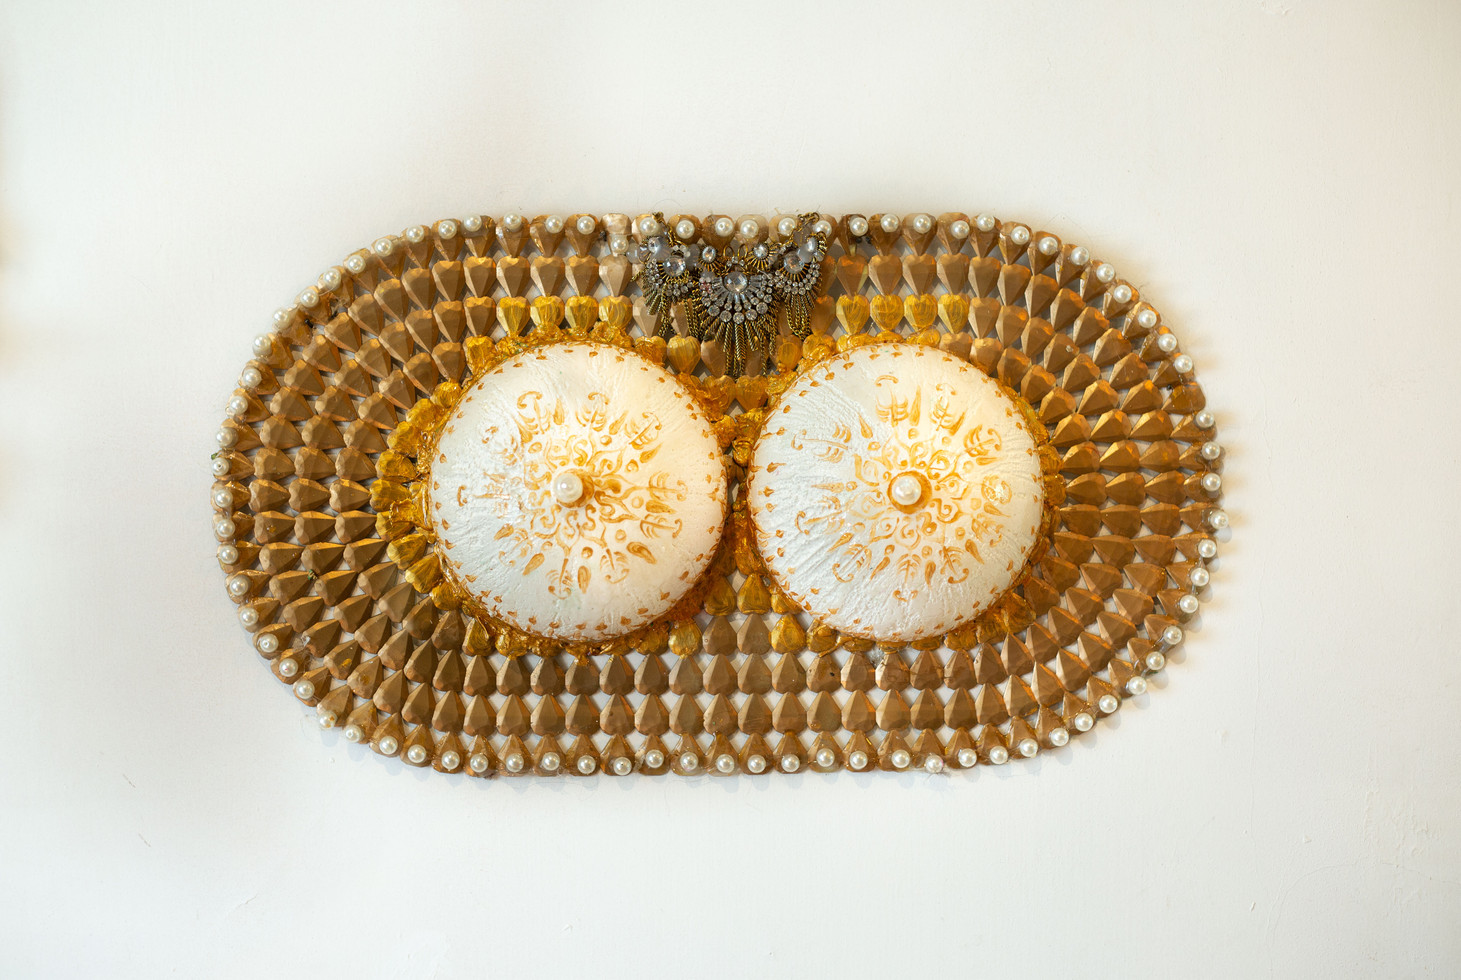 The breasts of the golden calves